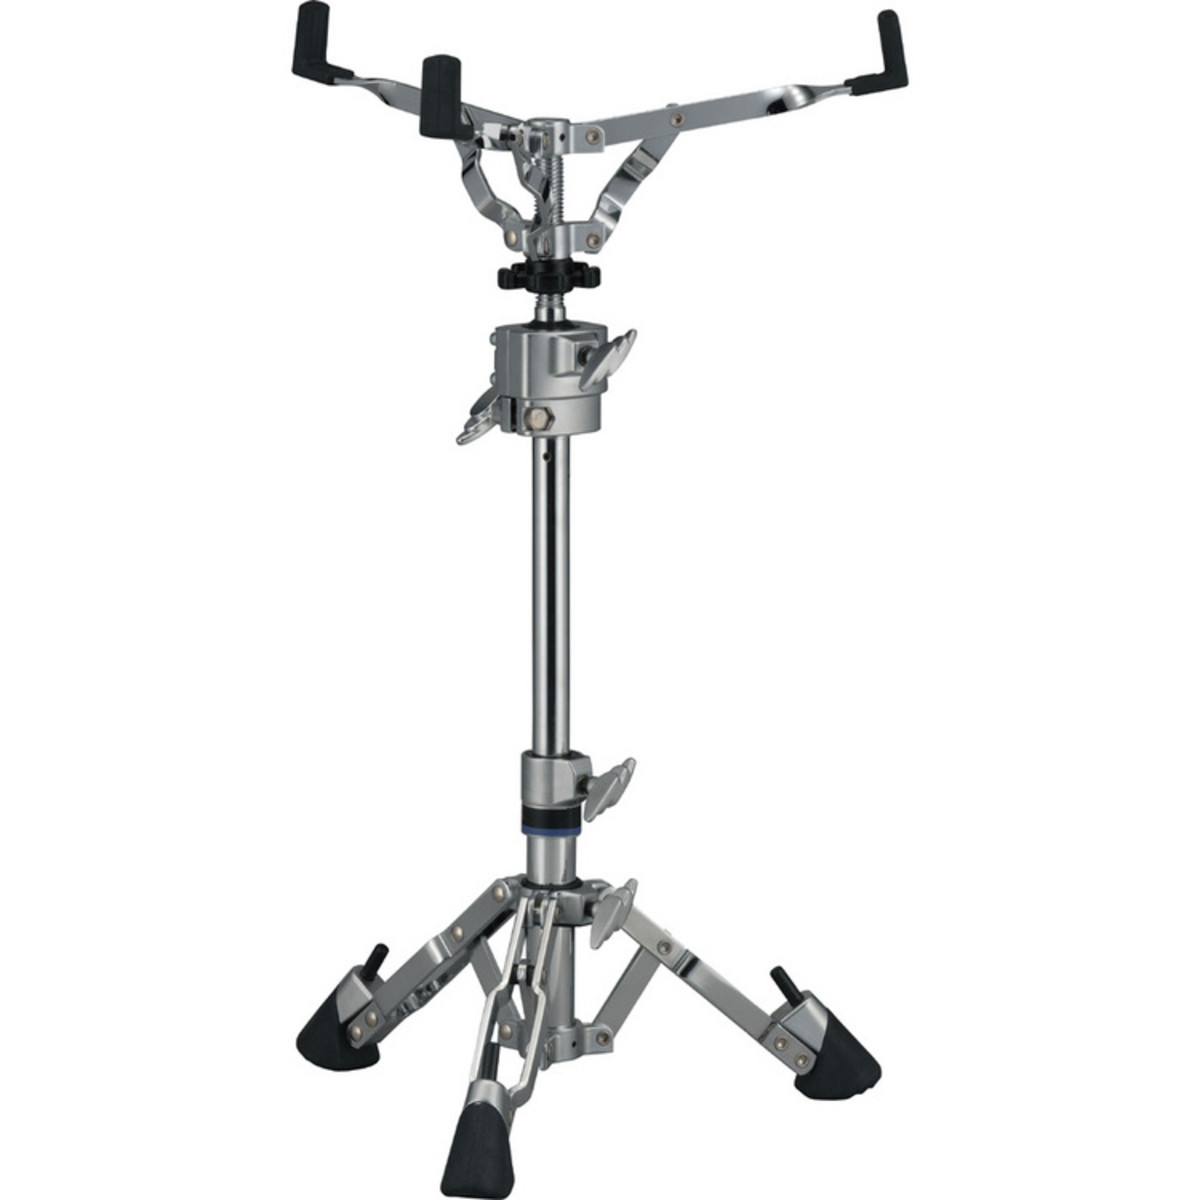 Yamaha Ss950 Snare Drum Stand At Gear4music